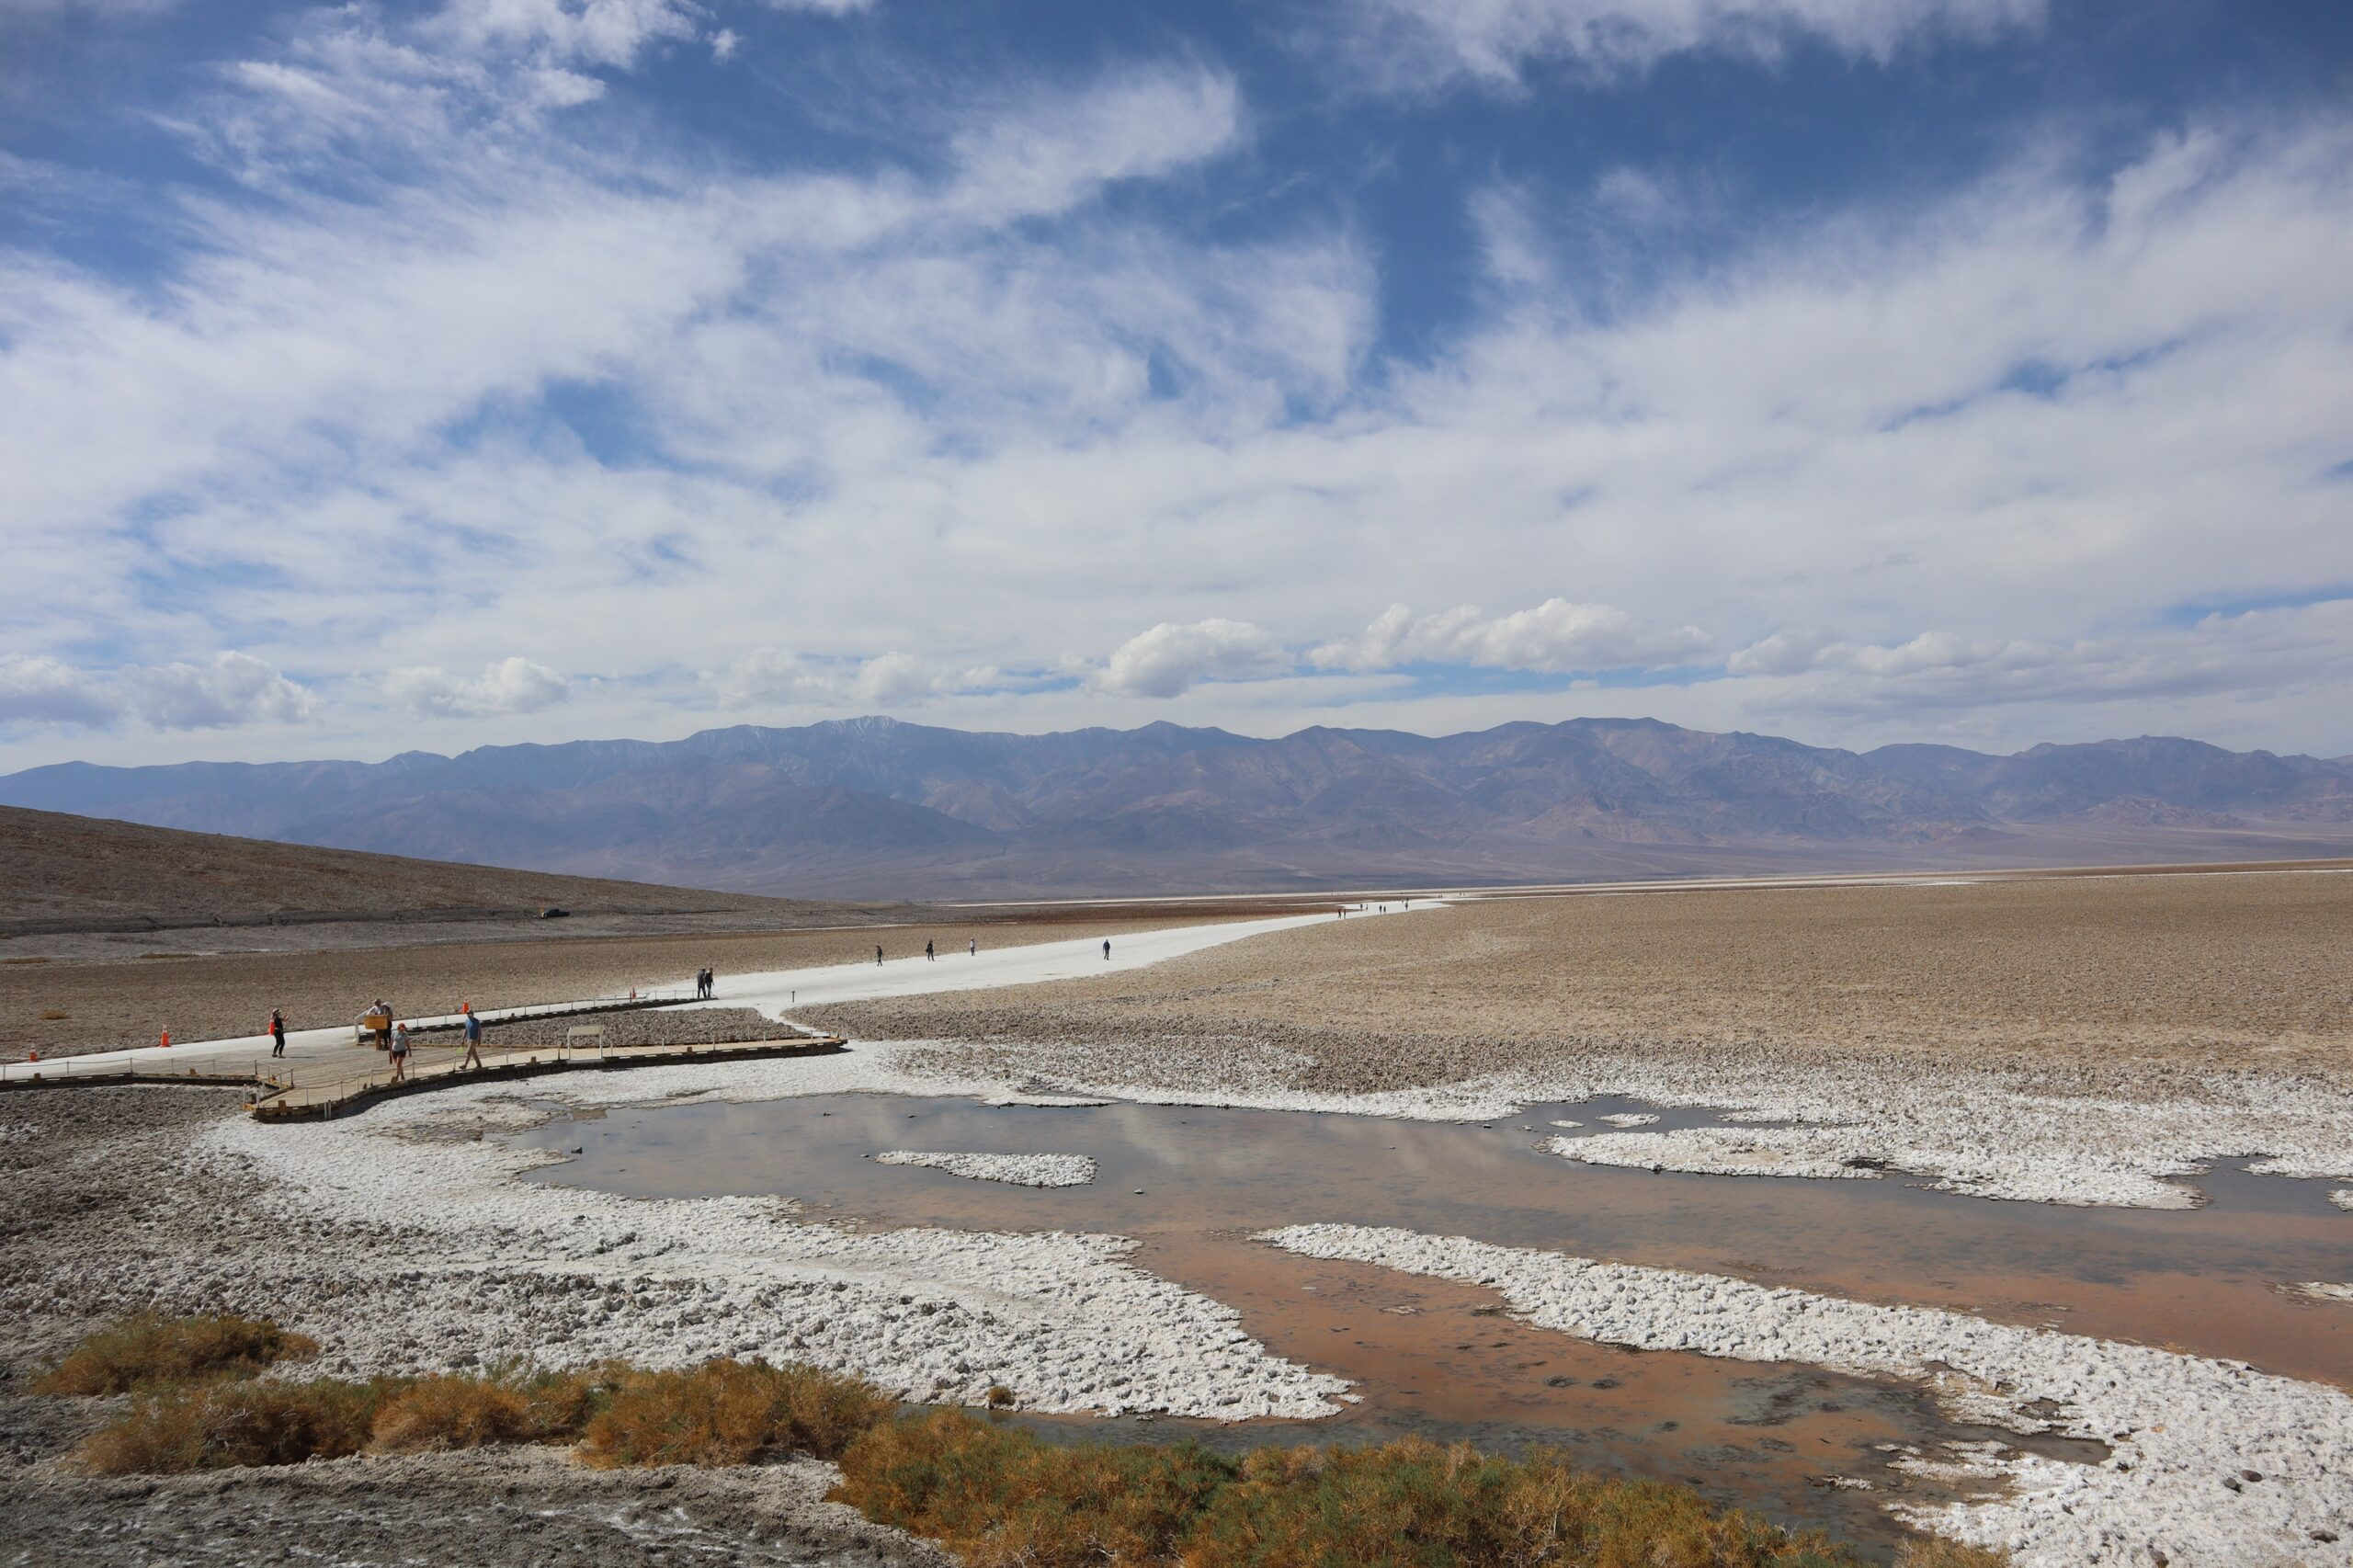 tiny people in a vast landscape in Death Valley National Park